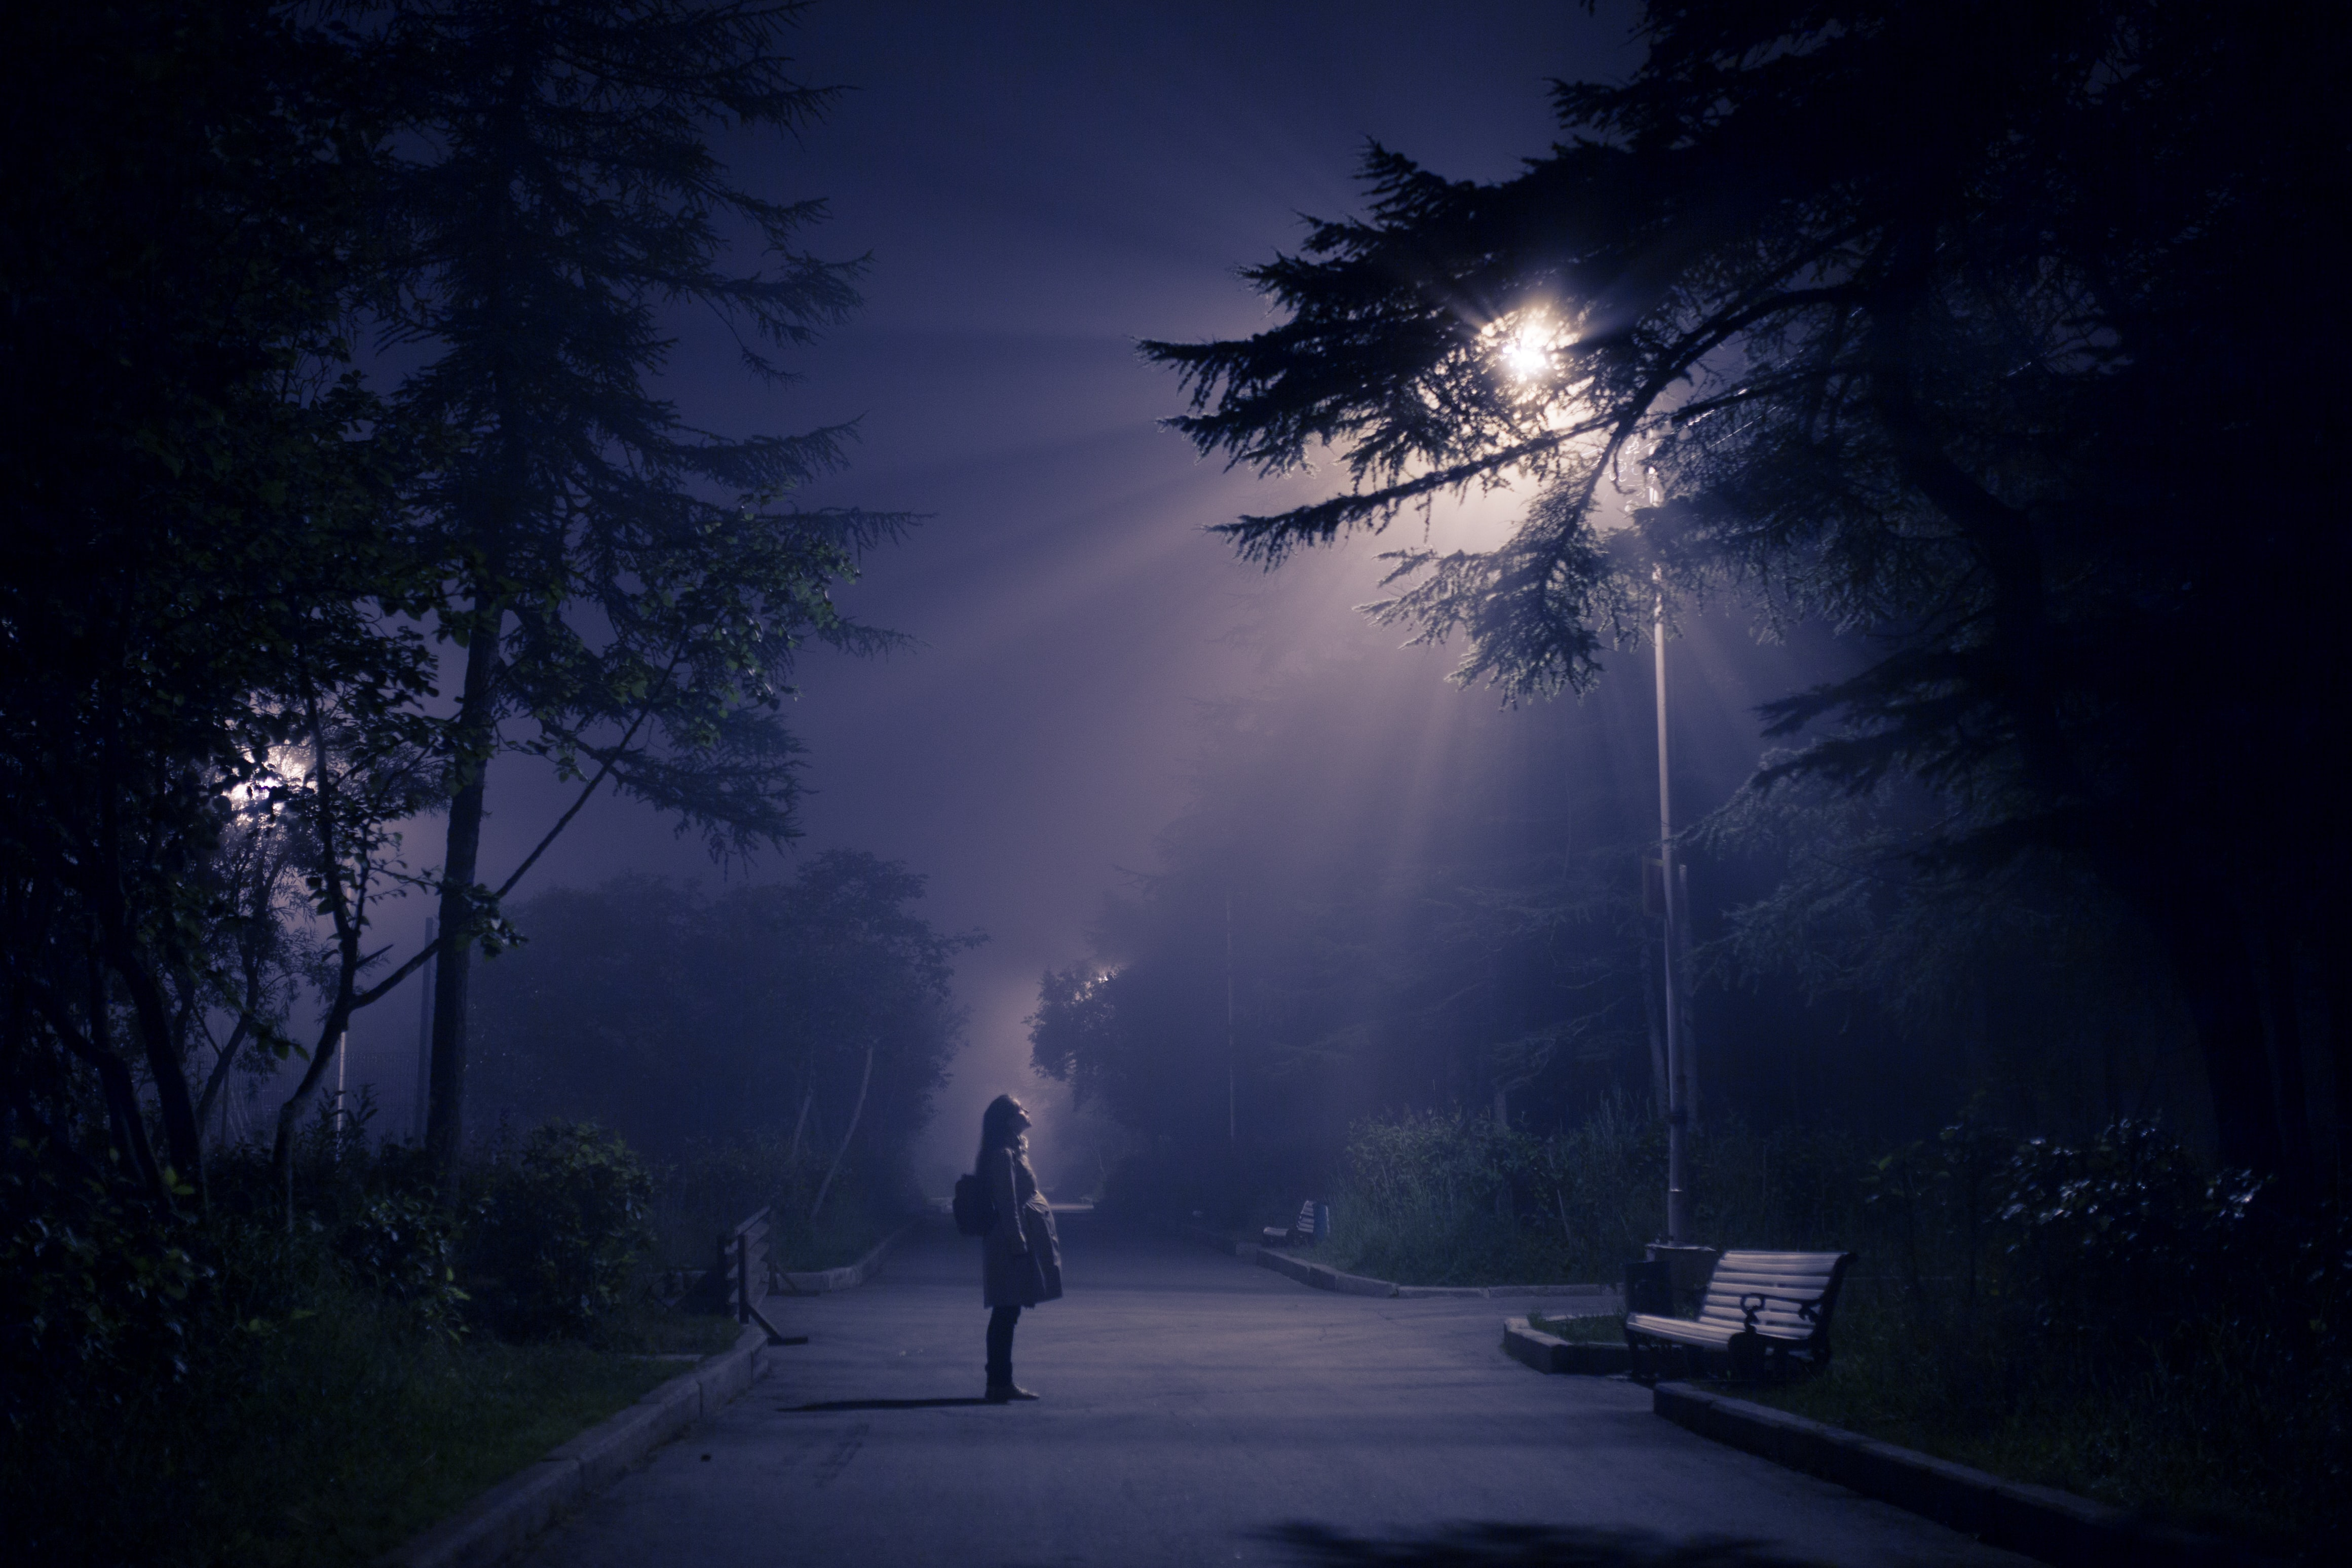 A person standing out after dark under a street light.